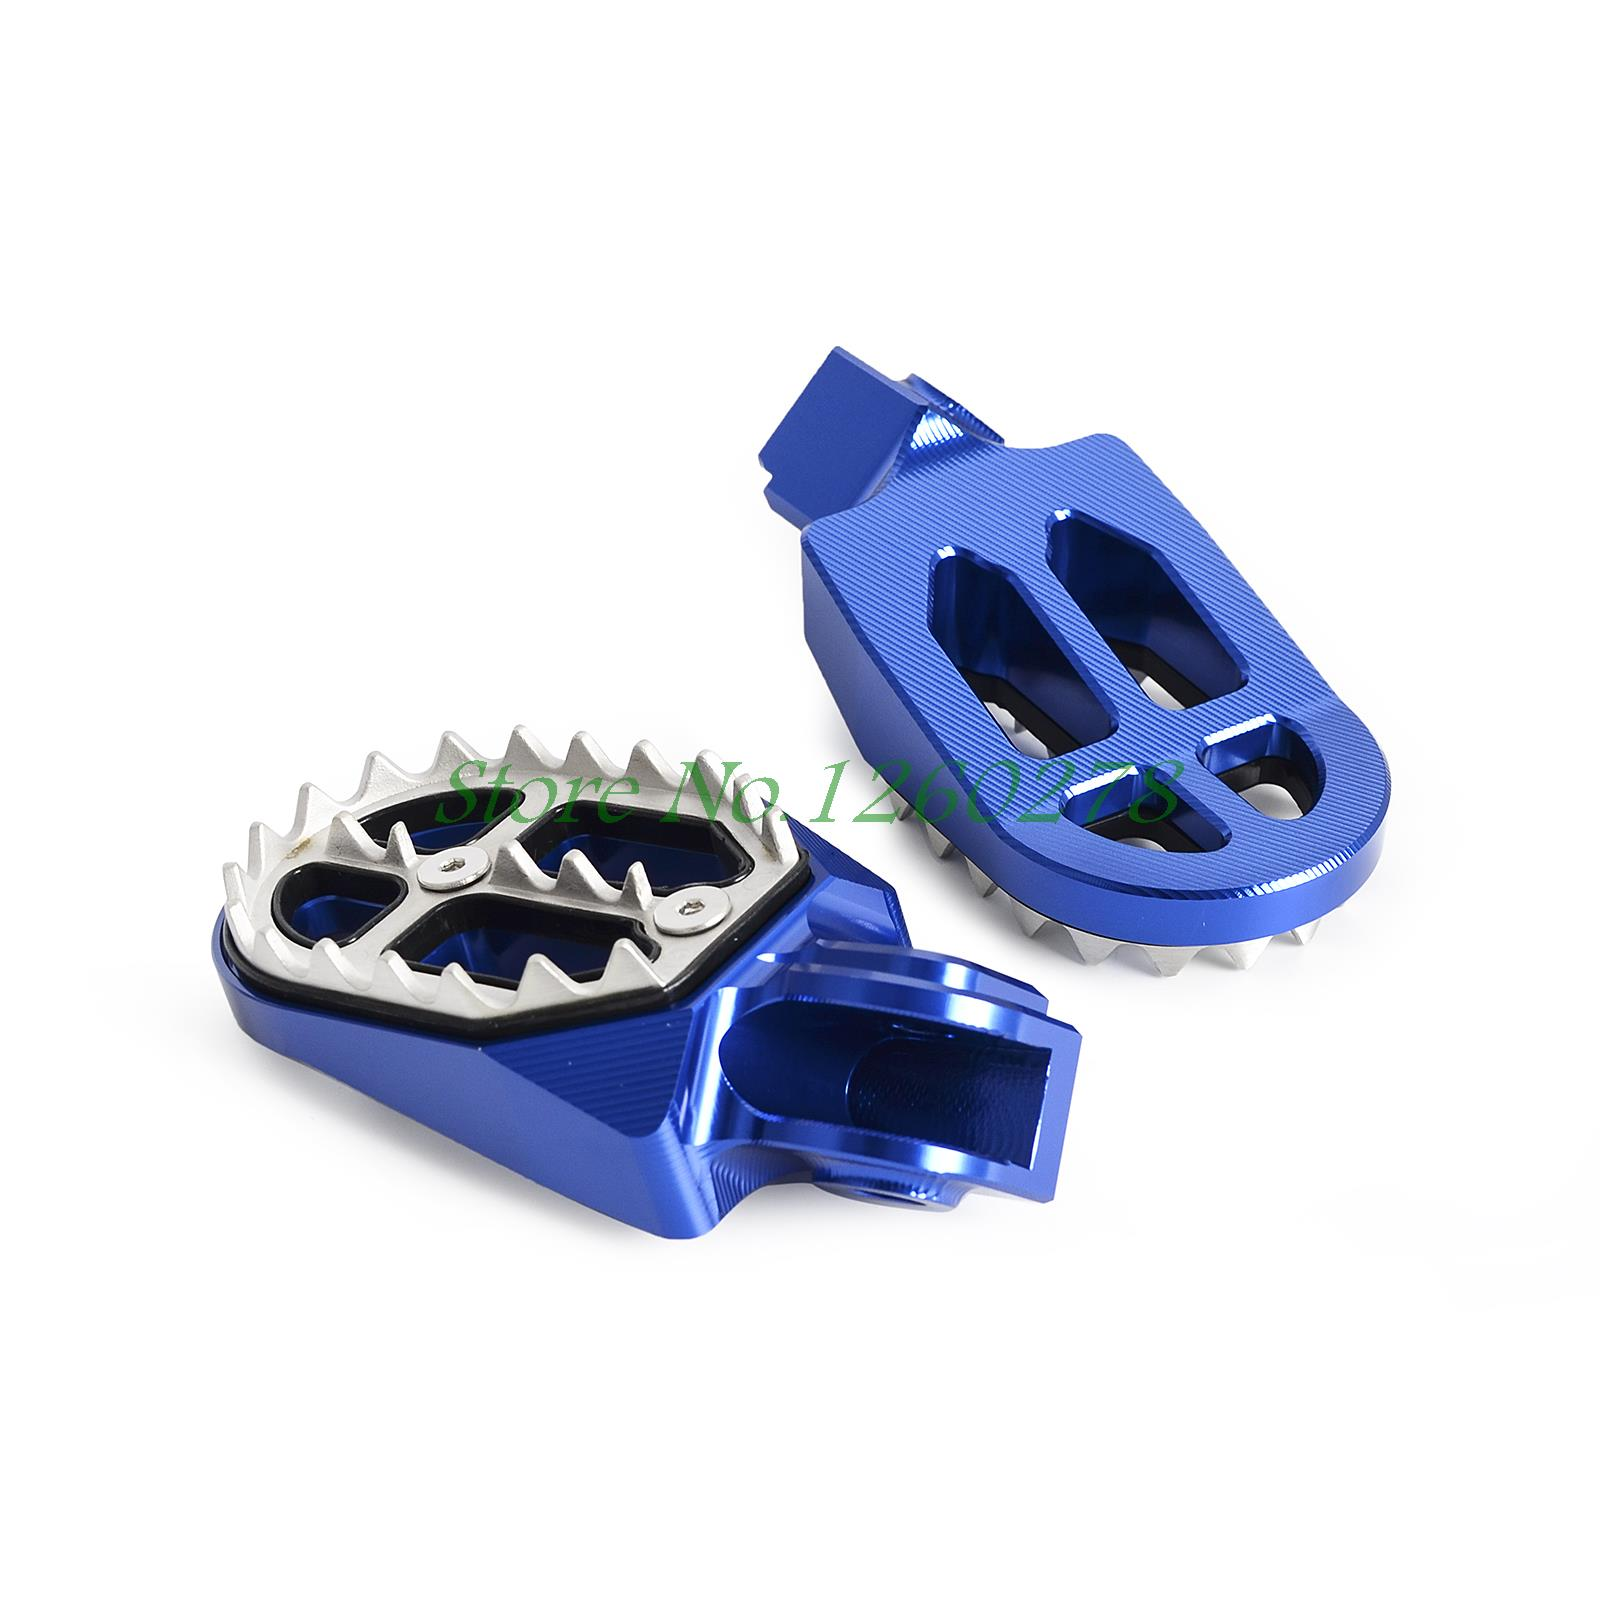 Billet MX Foot Pegs Rests Pedals For Husqvarna FE/FC/TE/TC 65 85 125 150 250 300 350 400 450 501 701 Husaberg FE/TE/FS/FX 09-14